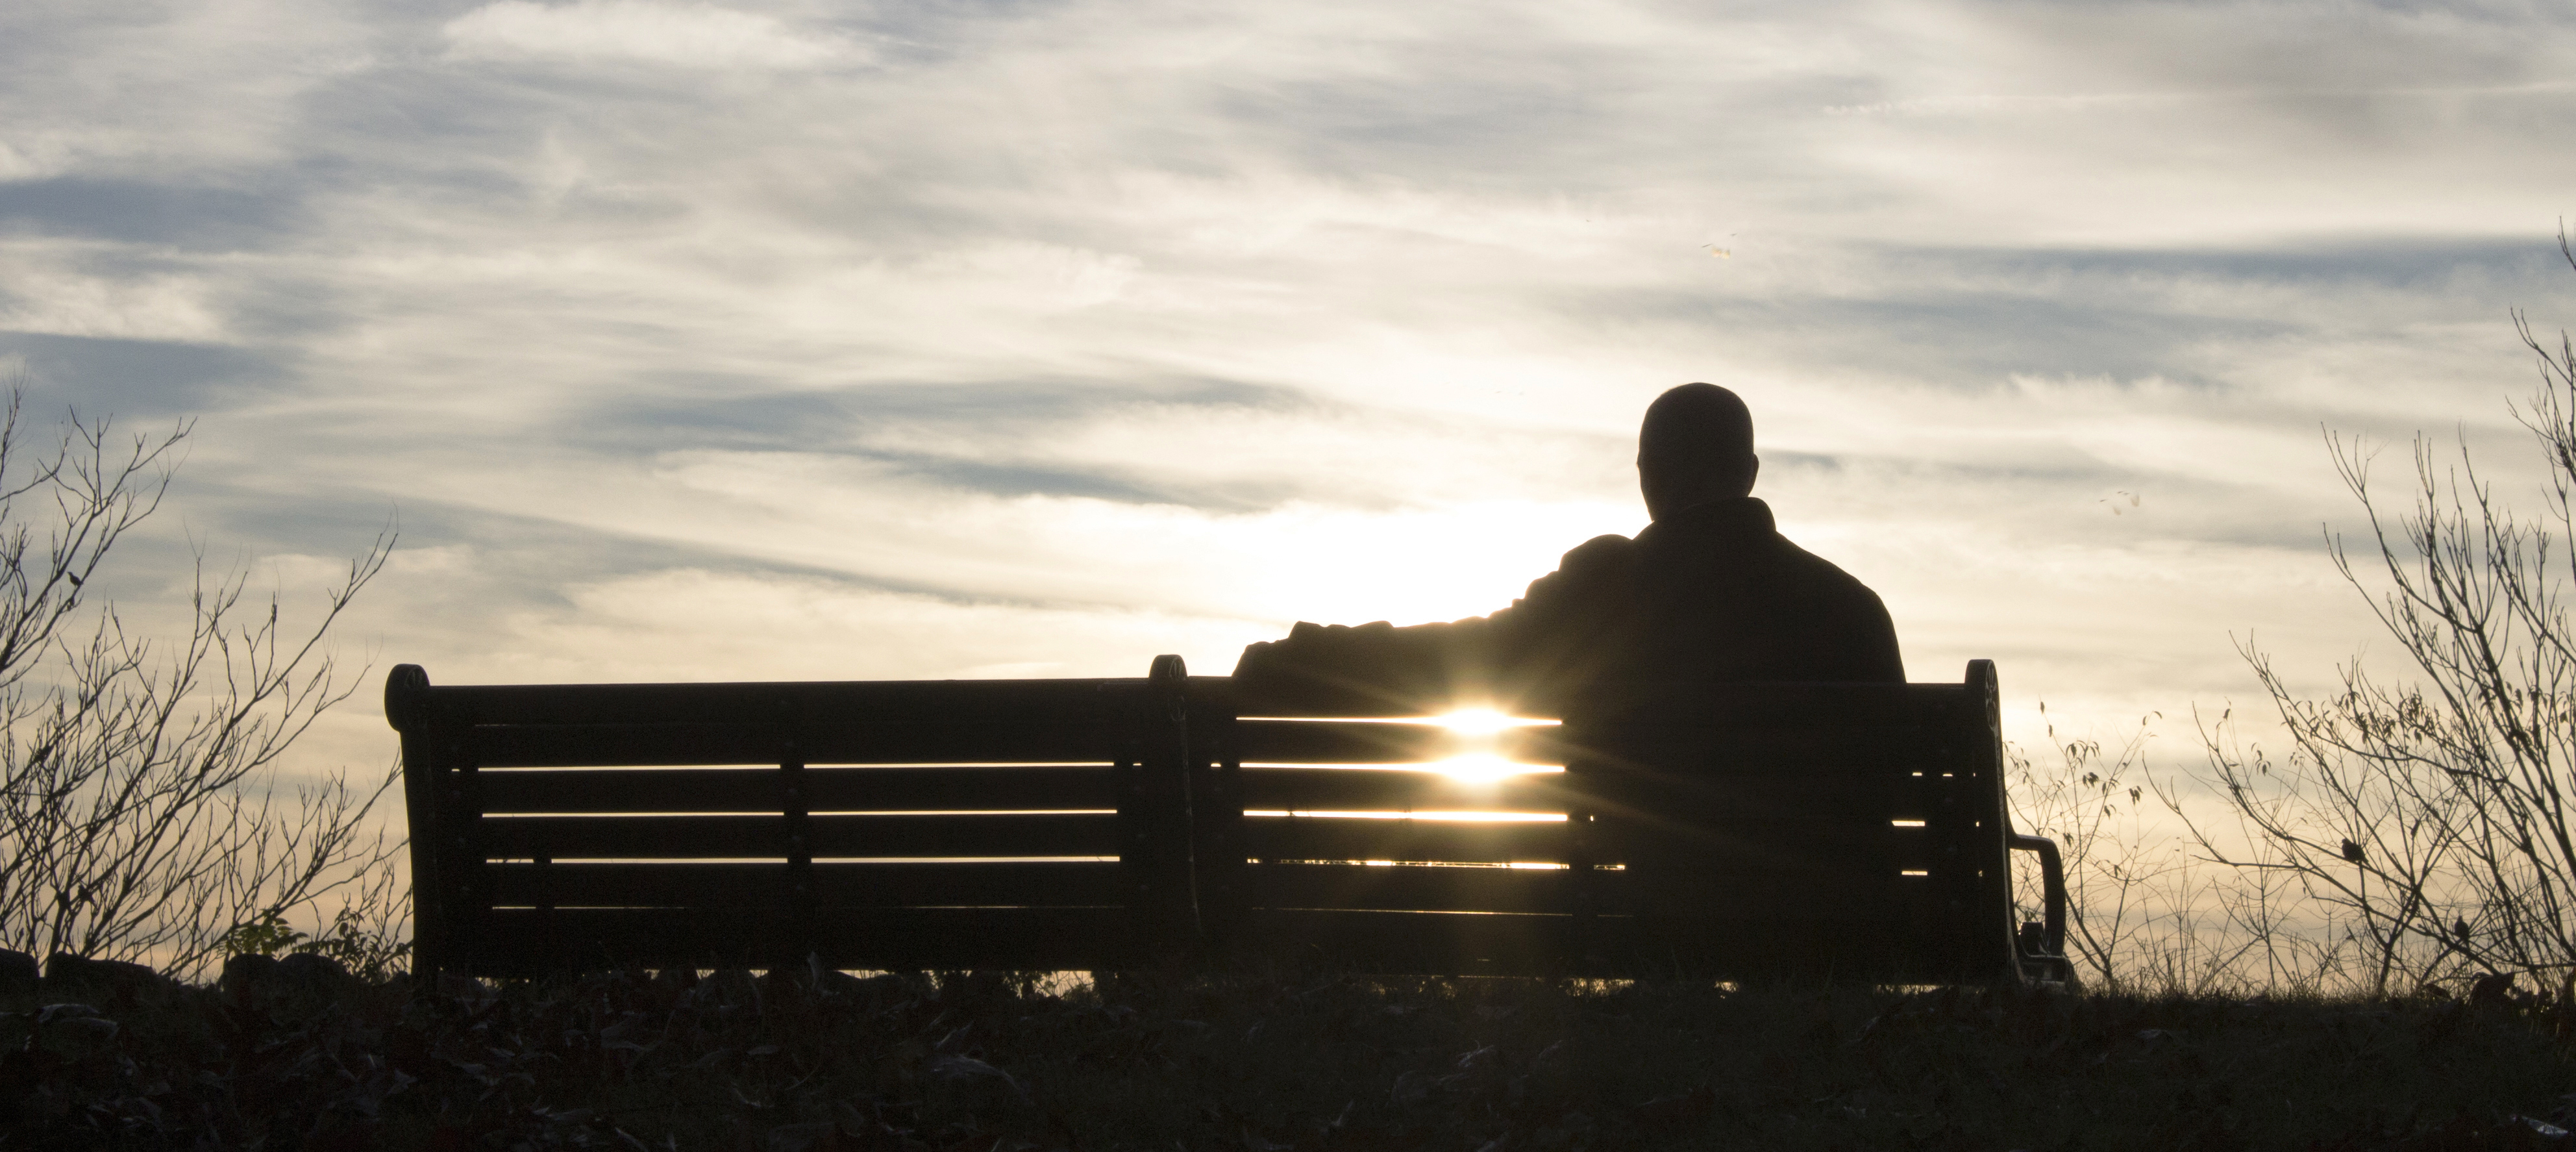 Sillouette of a man sitting on a park bench